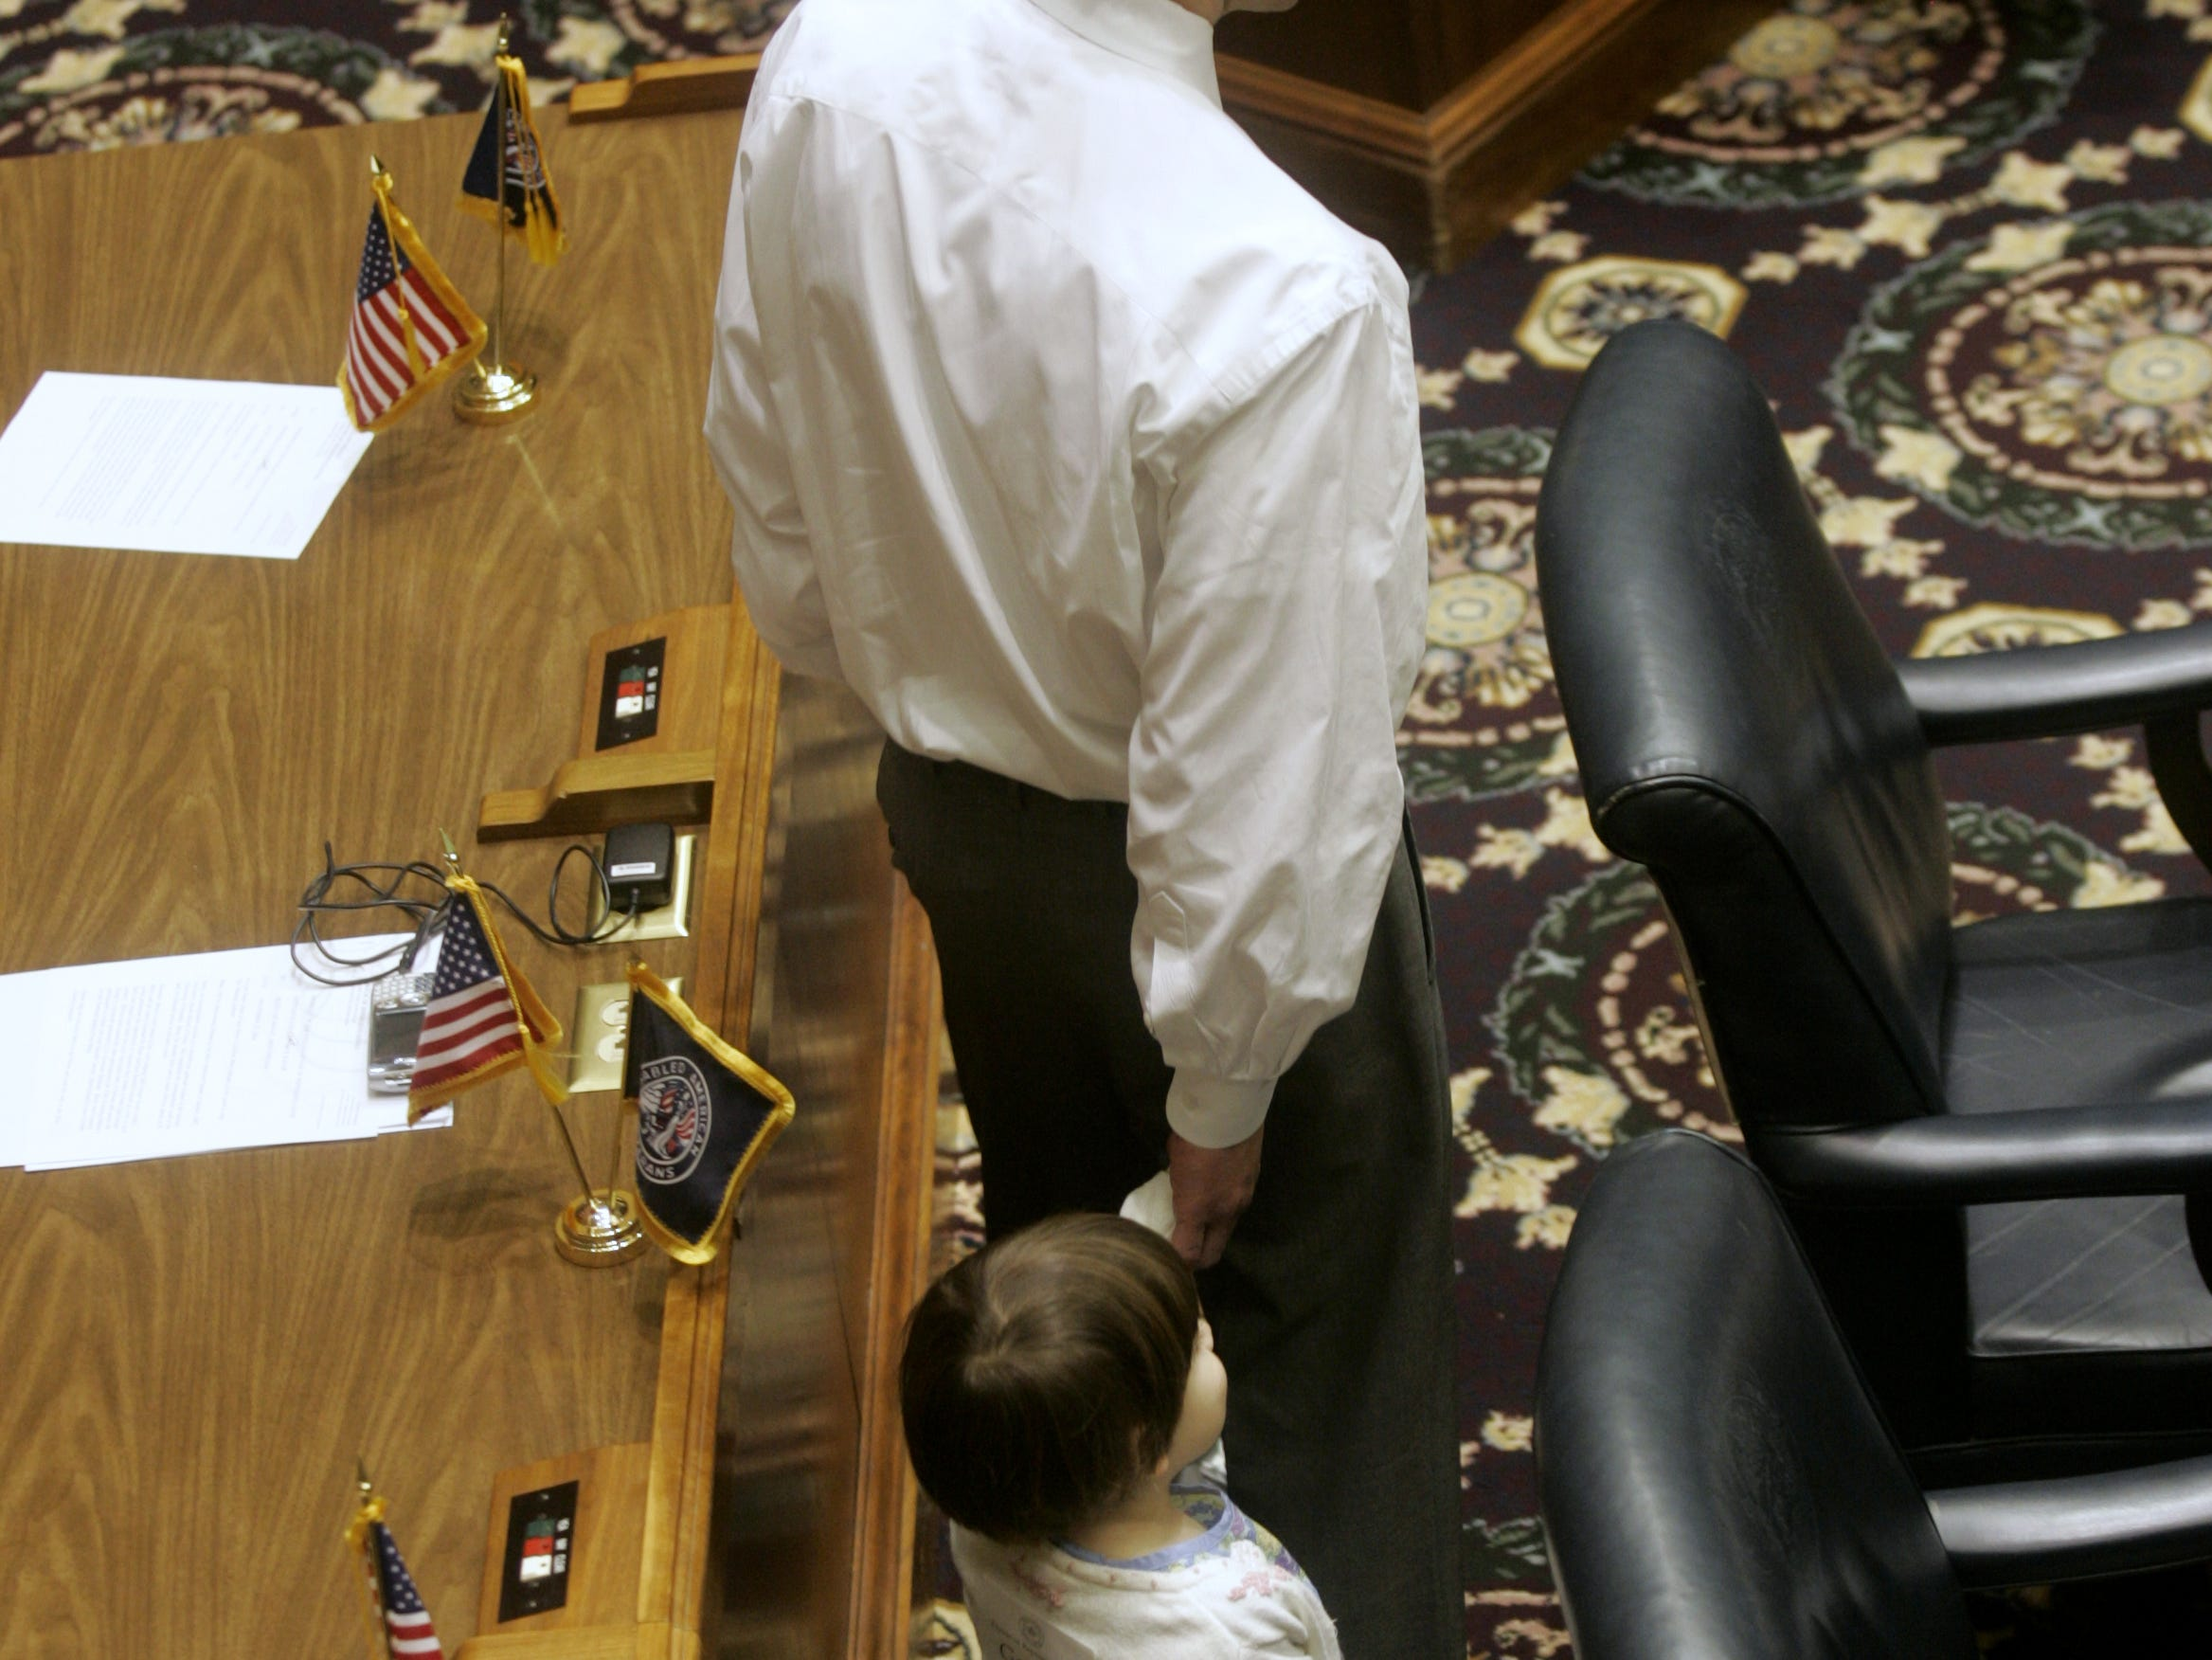 Representative David Orentlicher (cq) walks his daughter Shayna (cq) around the House chambers on organization day, Tuesday, November 21, 2006.  (Kelly Wilkinson / The Indianapolis Star)